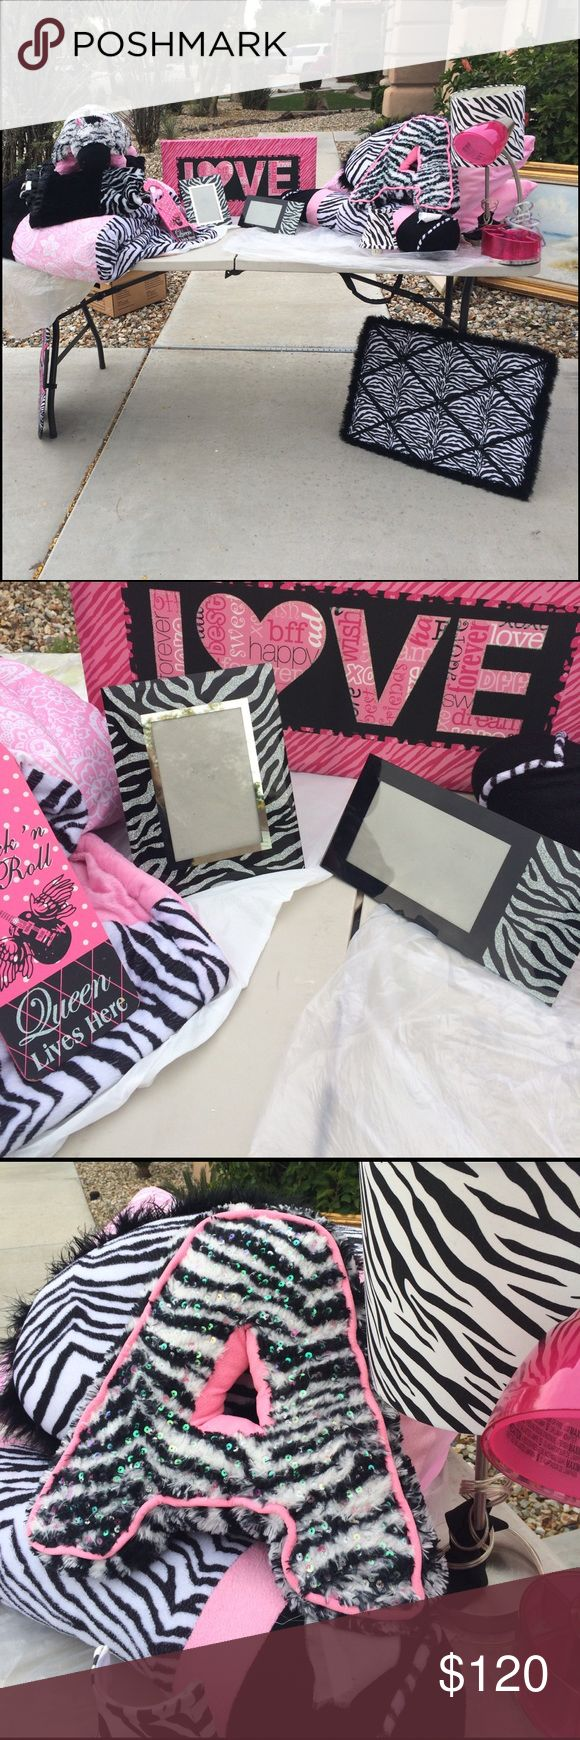 Pink and zebra bedroom set💕 A beautiful pink and zebra bedroom set. It comes with a full pink and zebra bedding with. Zebra lamp and a pink desk lamp. It comes with a love sign and two zebra picture boards. With many pillows including two zebra blankets and a zebra and pink pillow pet. A pink and zebra door handle sign. Two zebra glitter picture frames. And a small night light lamp shade. Other